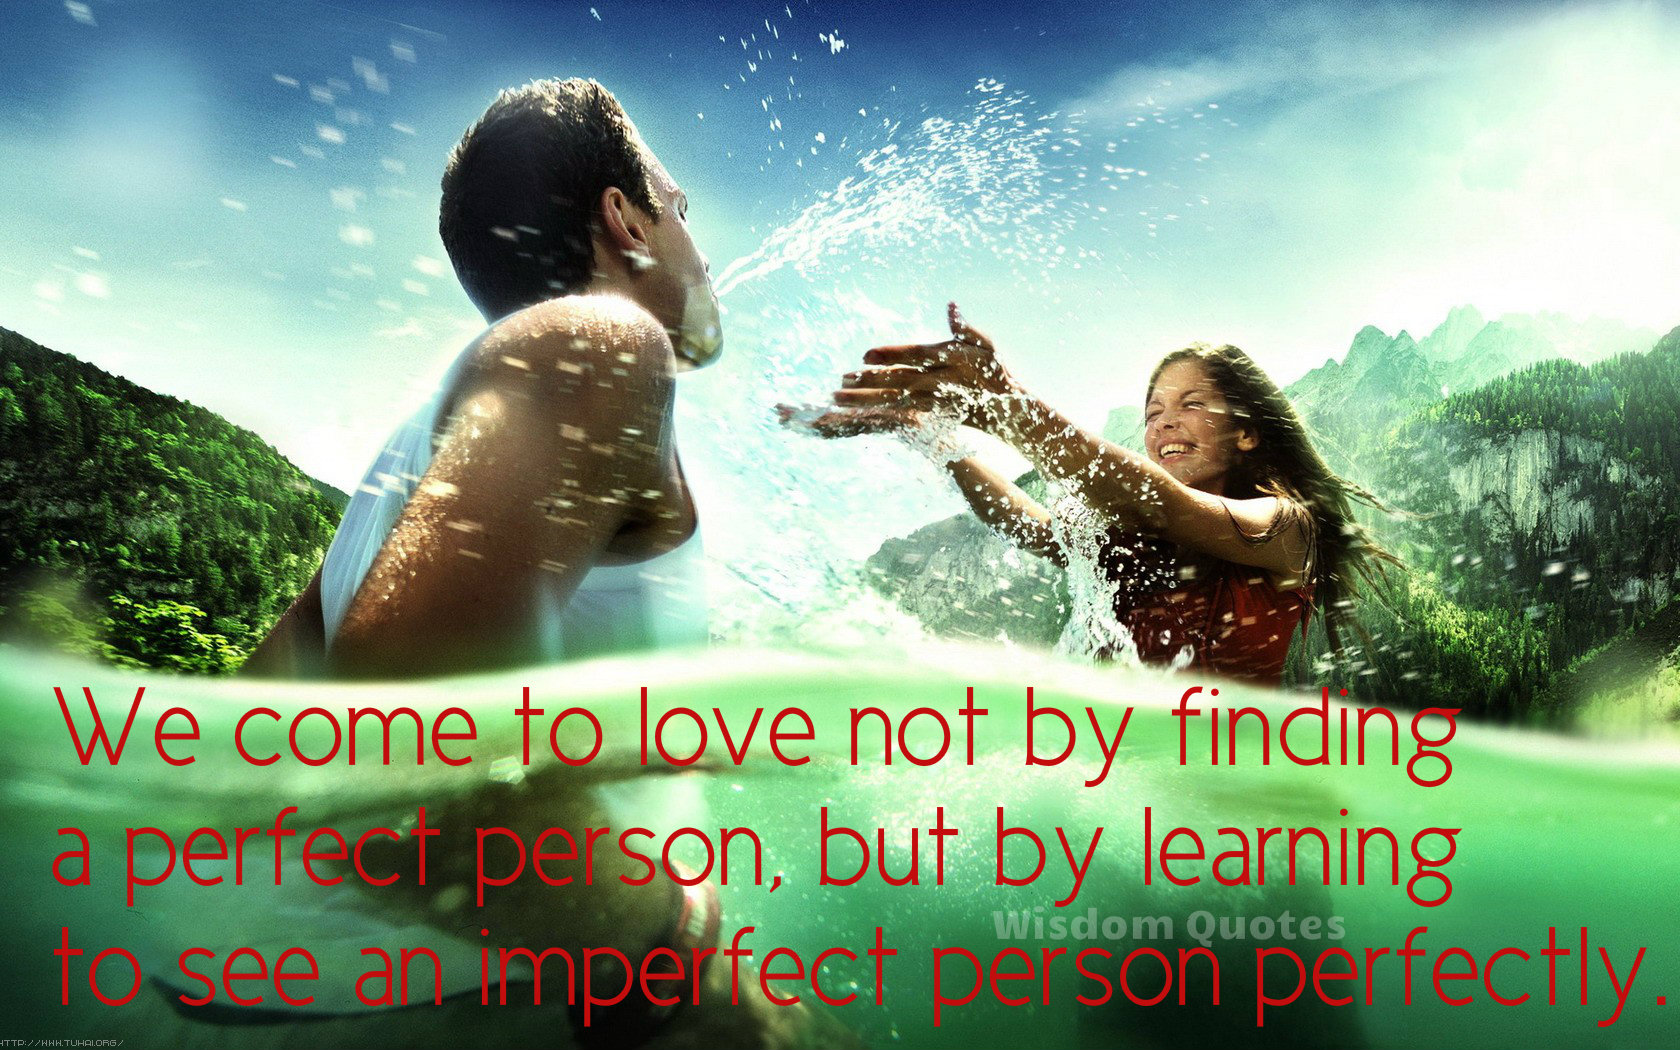 We love not by finding perfect person but by seeing imperfect person perfectly  - Wisdom Quotes and Stories